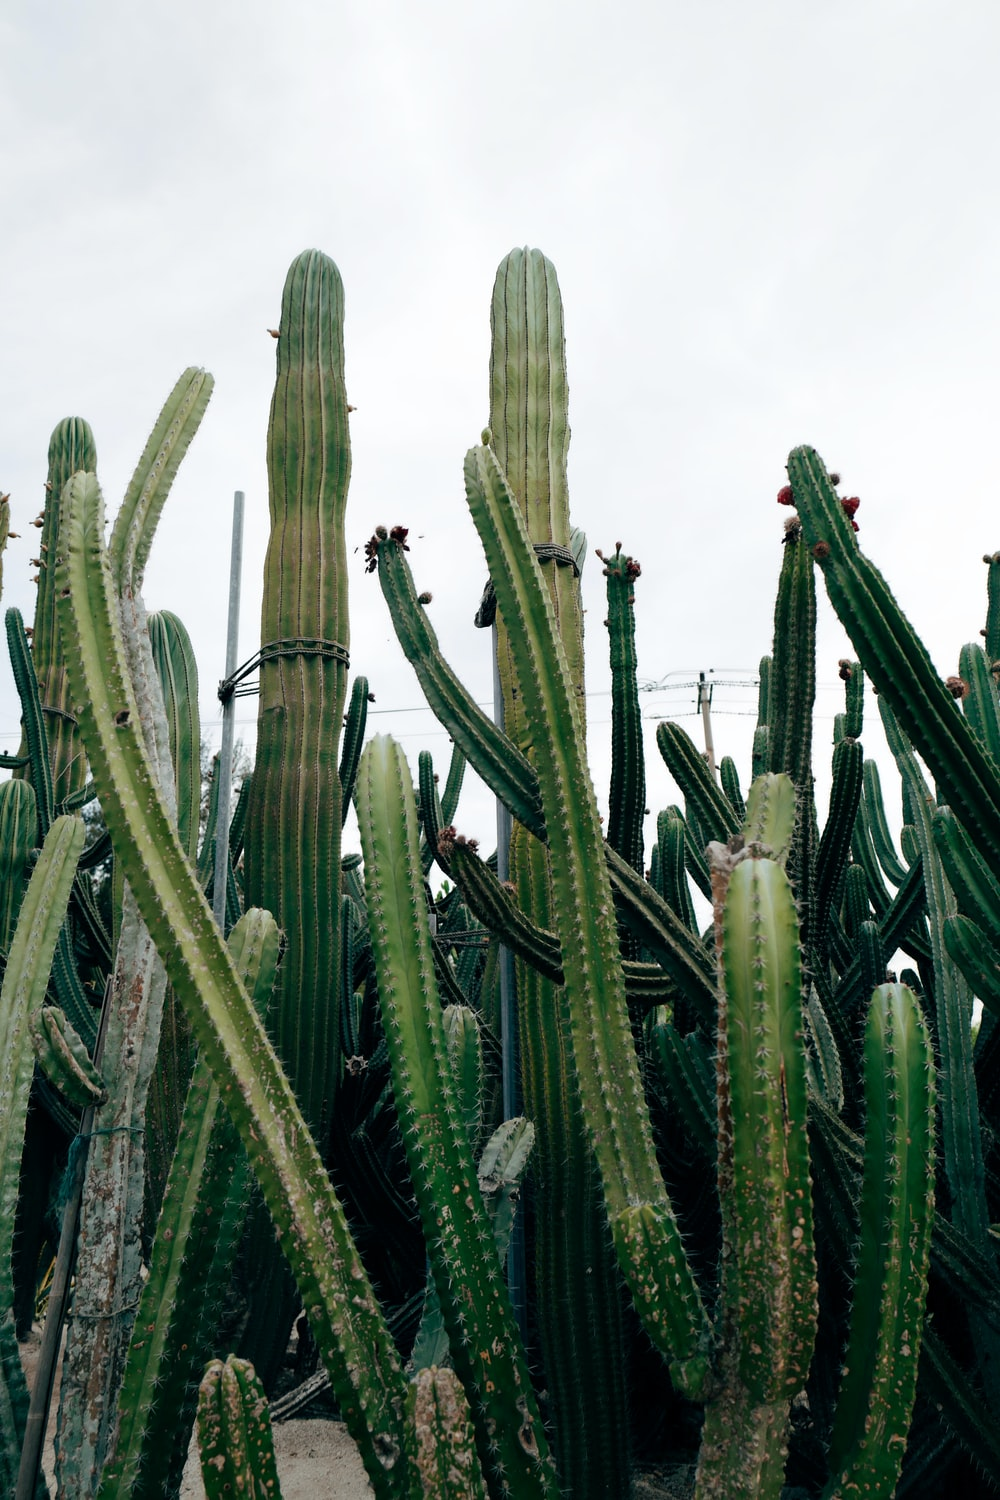 green cactus plants under white sky during daytime